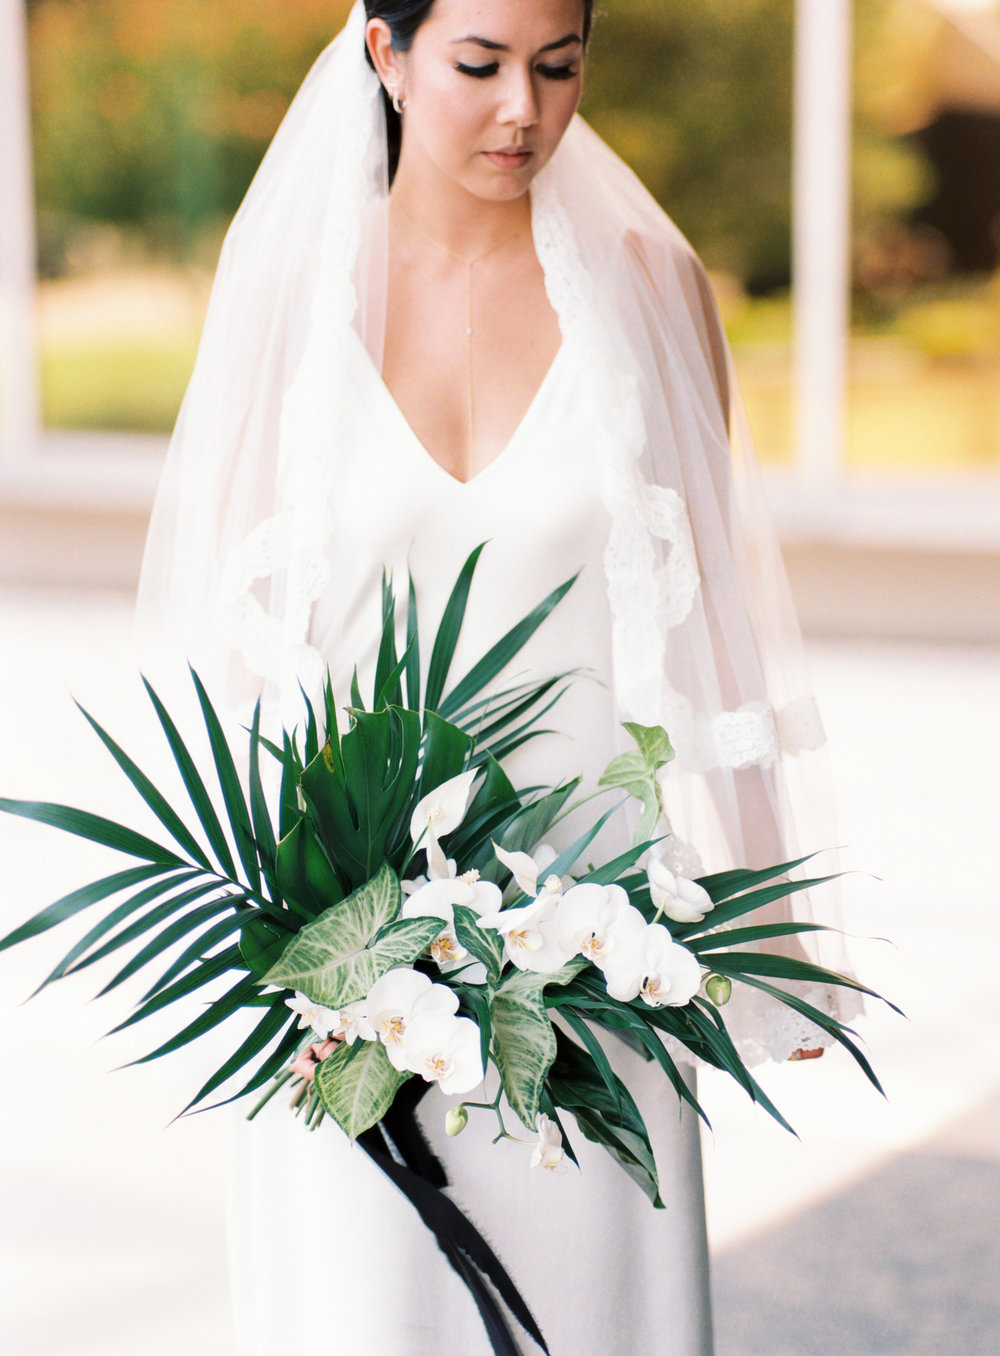 black-white-green-wedding.jpg